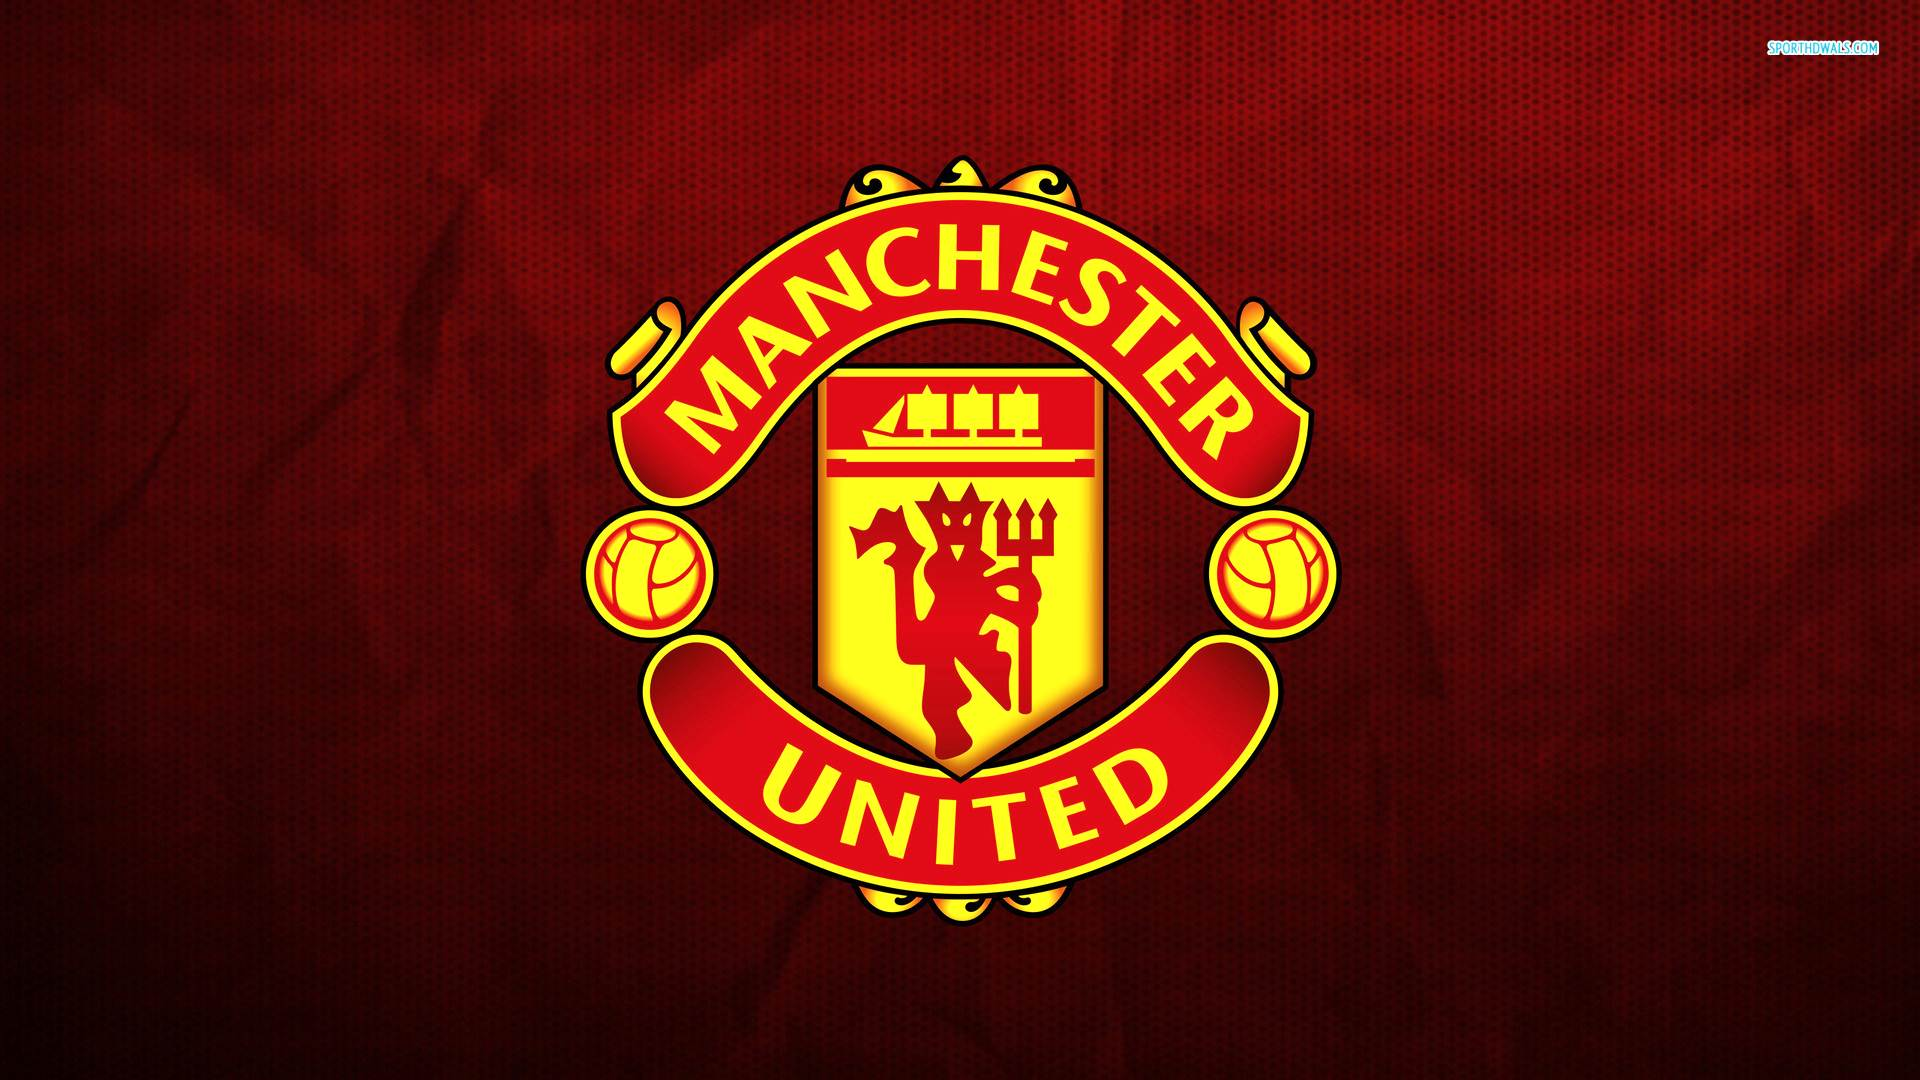 Manchester United Wallpapers HD Wallpaper Cave   Wallpaper 33 1920x1080